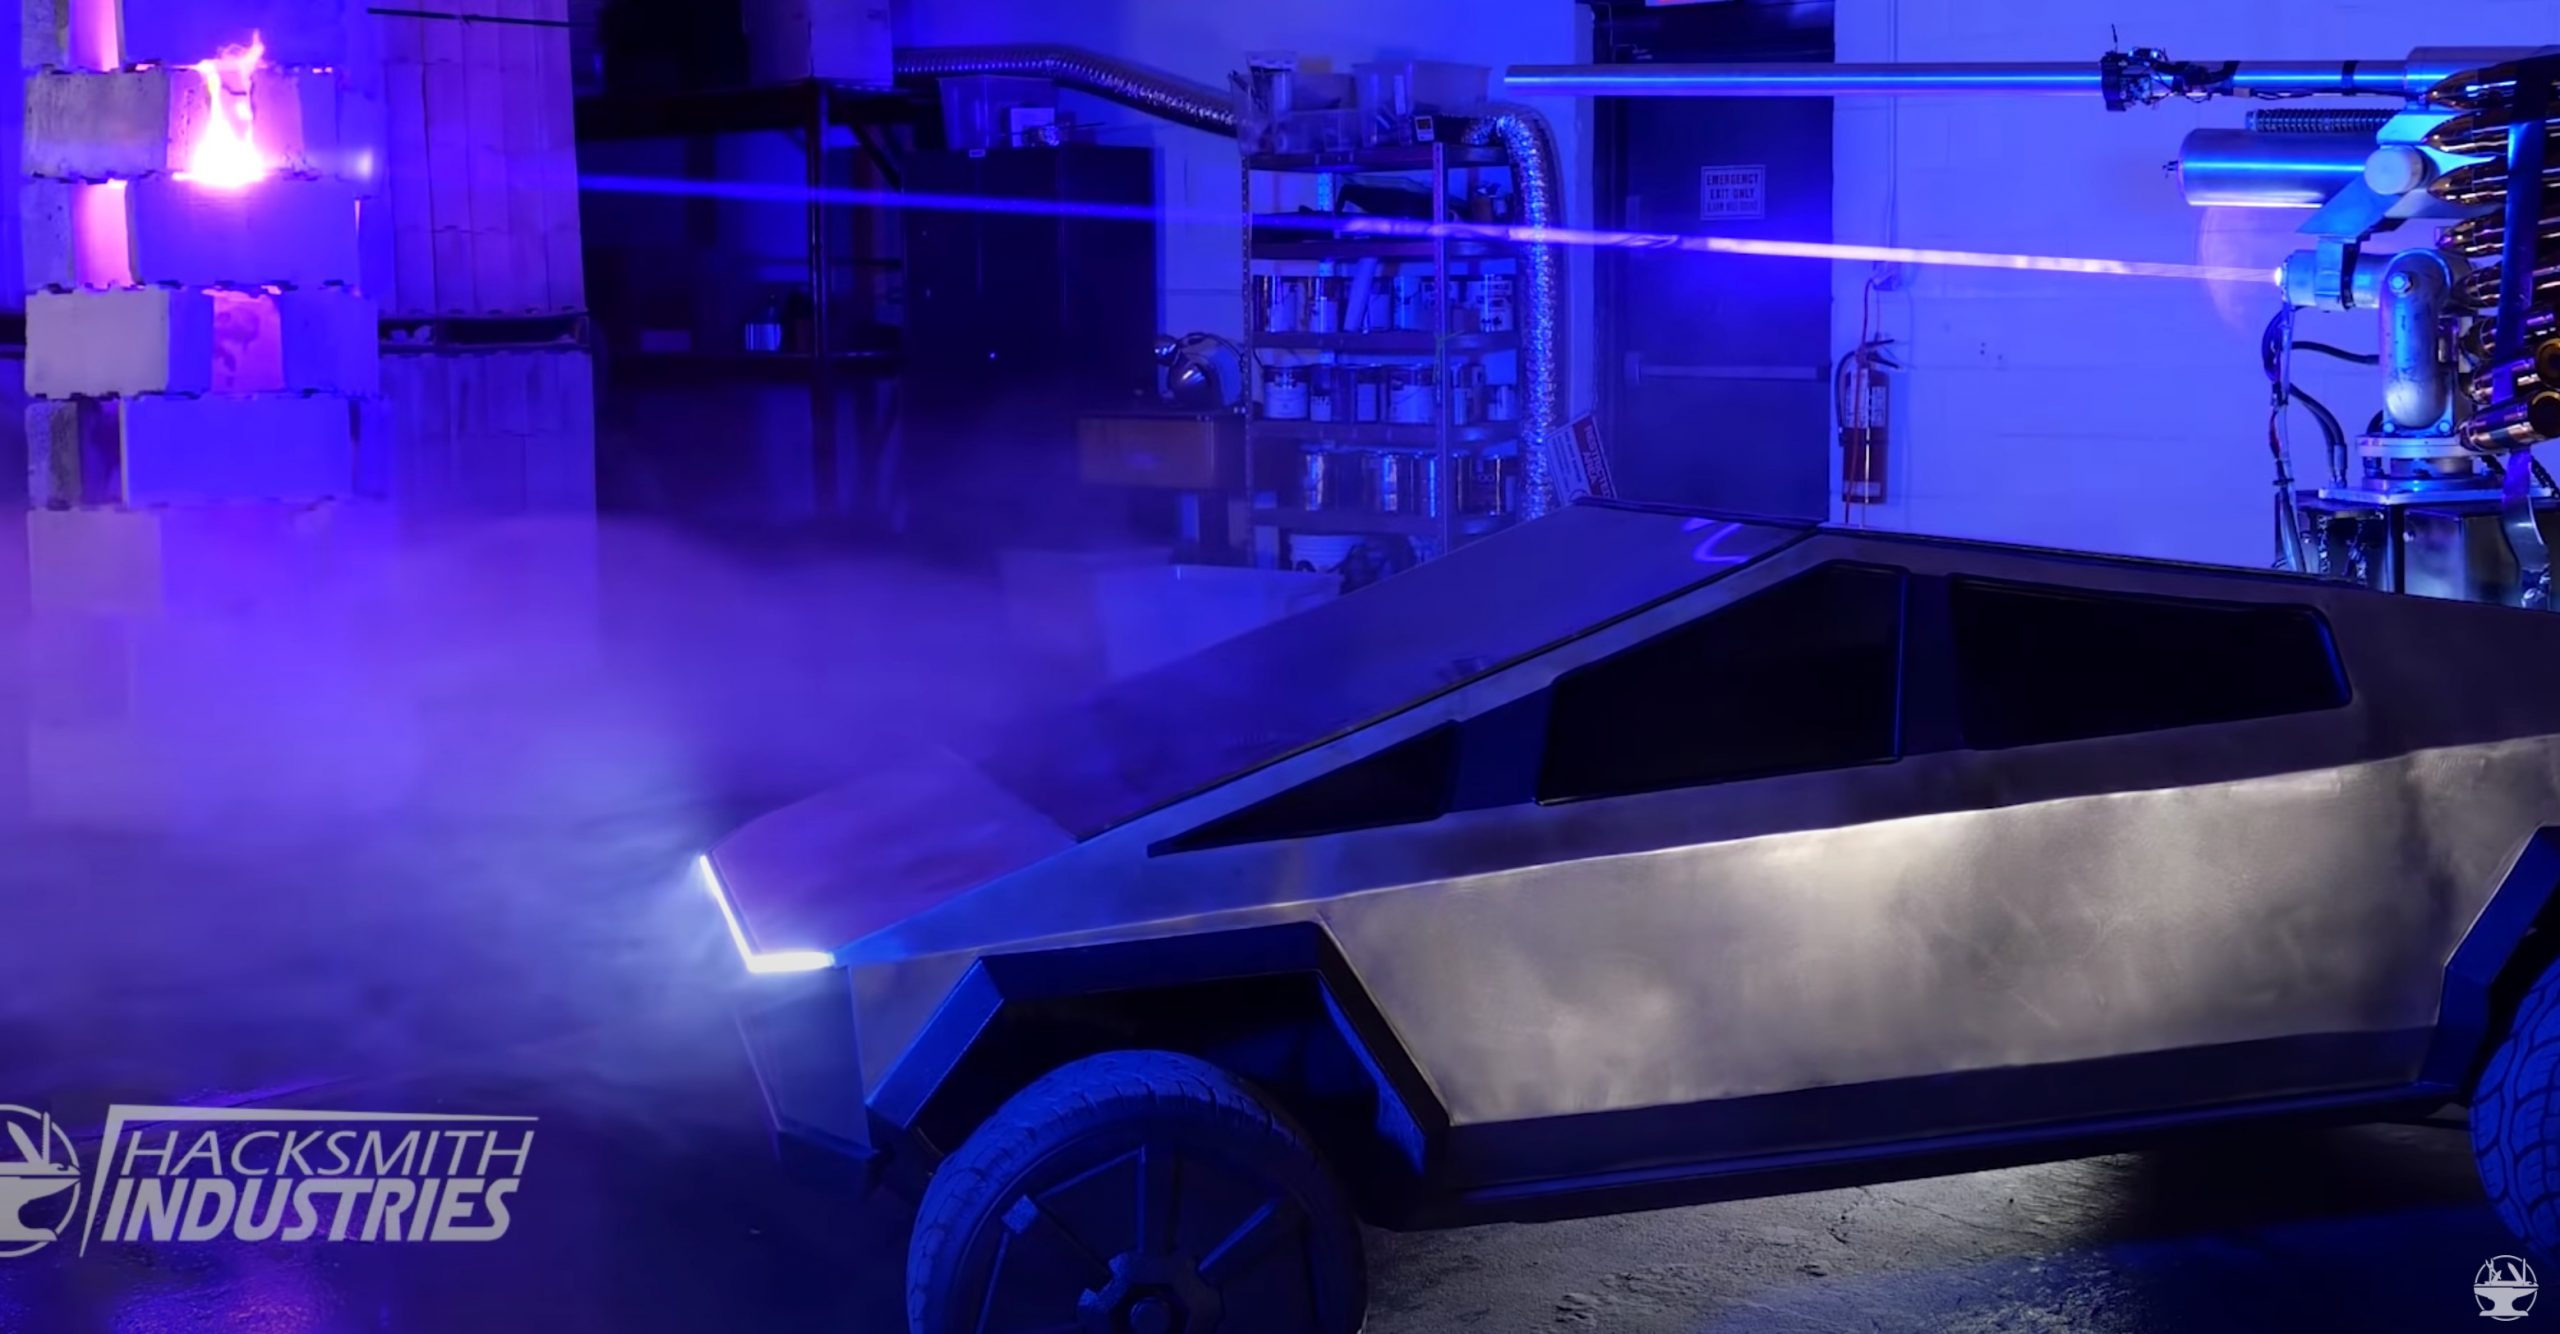 Tesla Cybertruck with Laser Cannon (Credit: Hacksmith via Youtube)